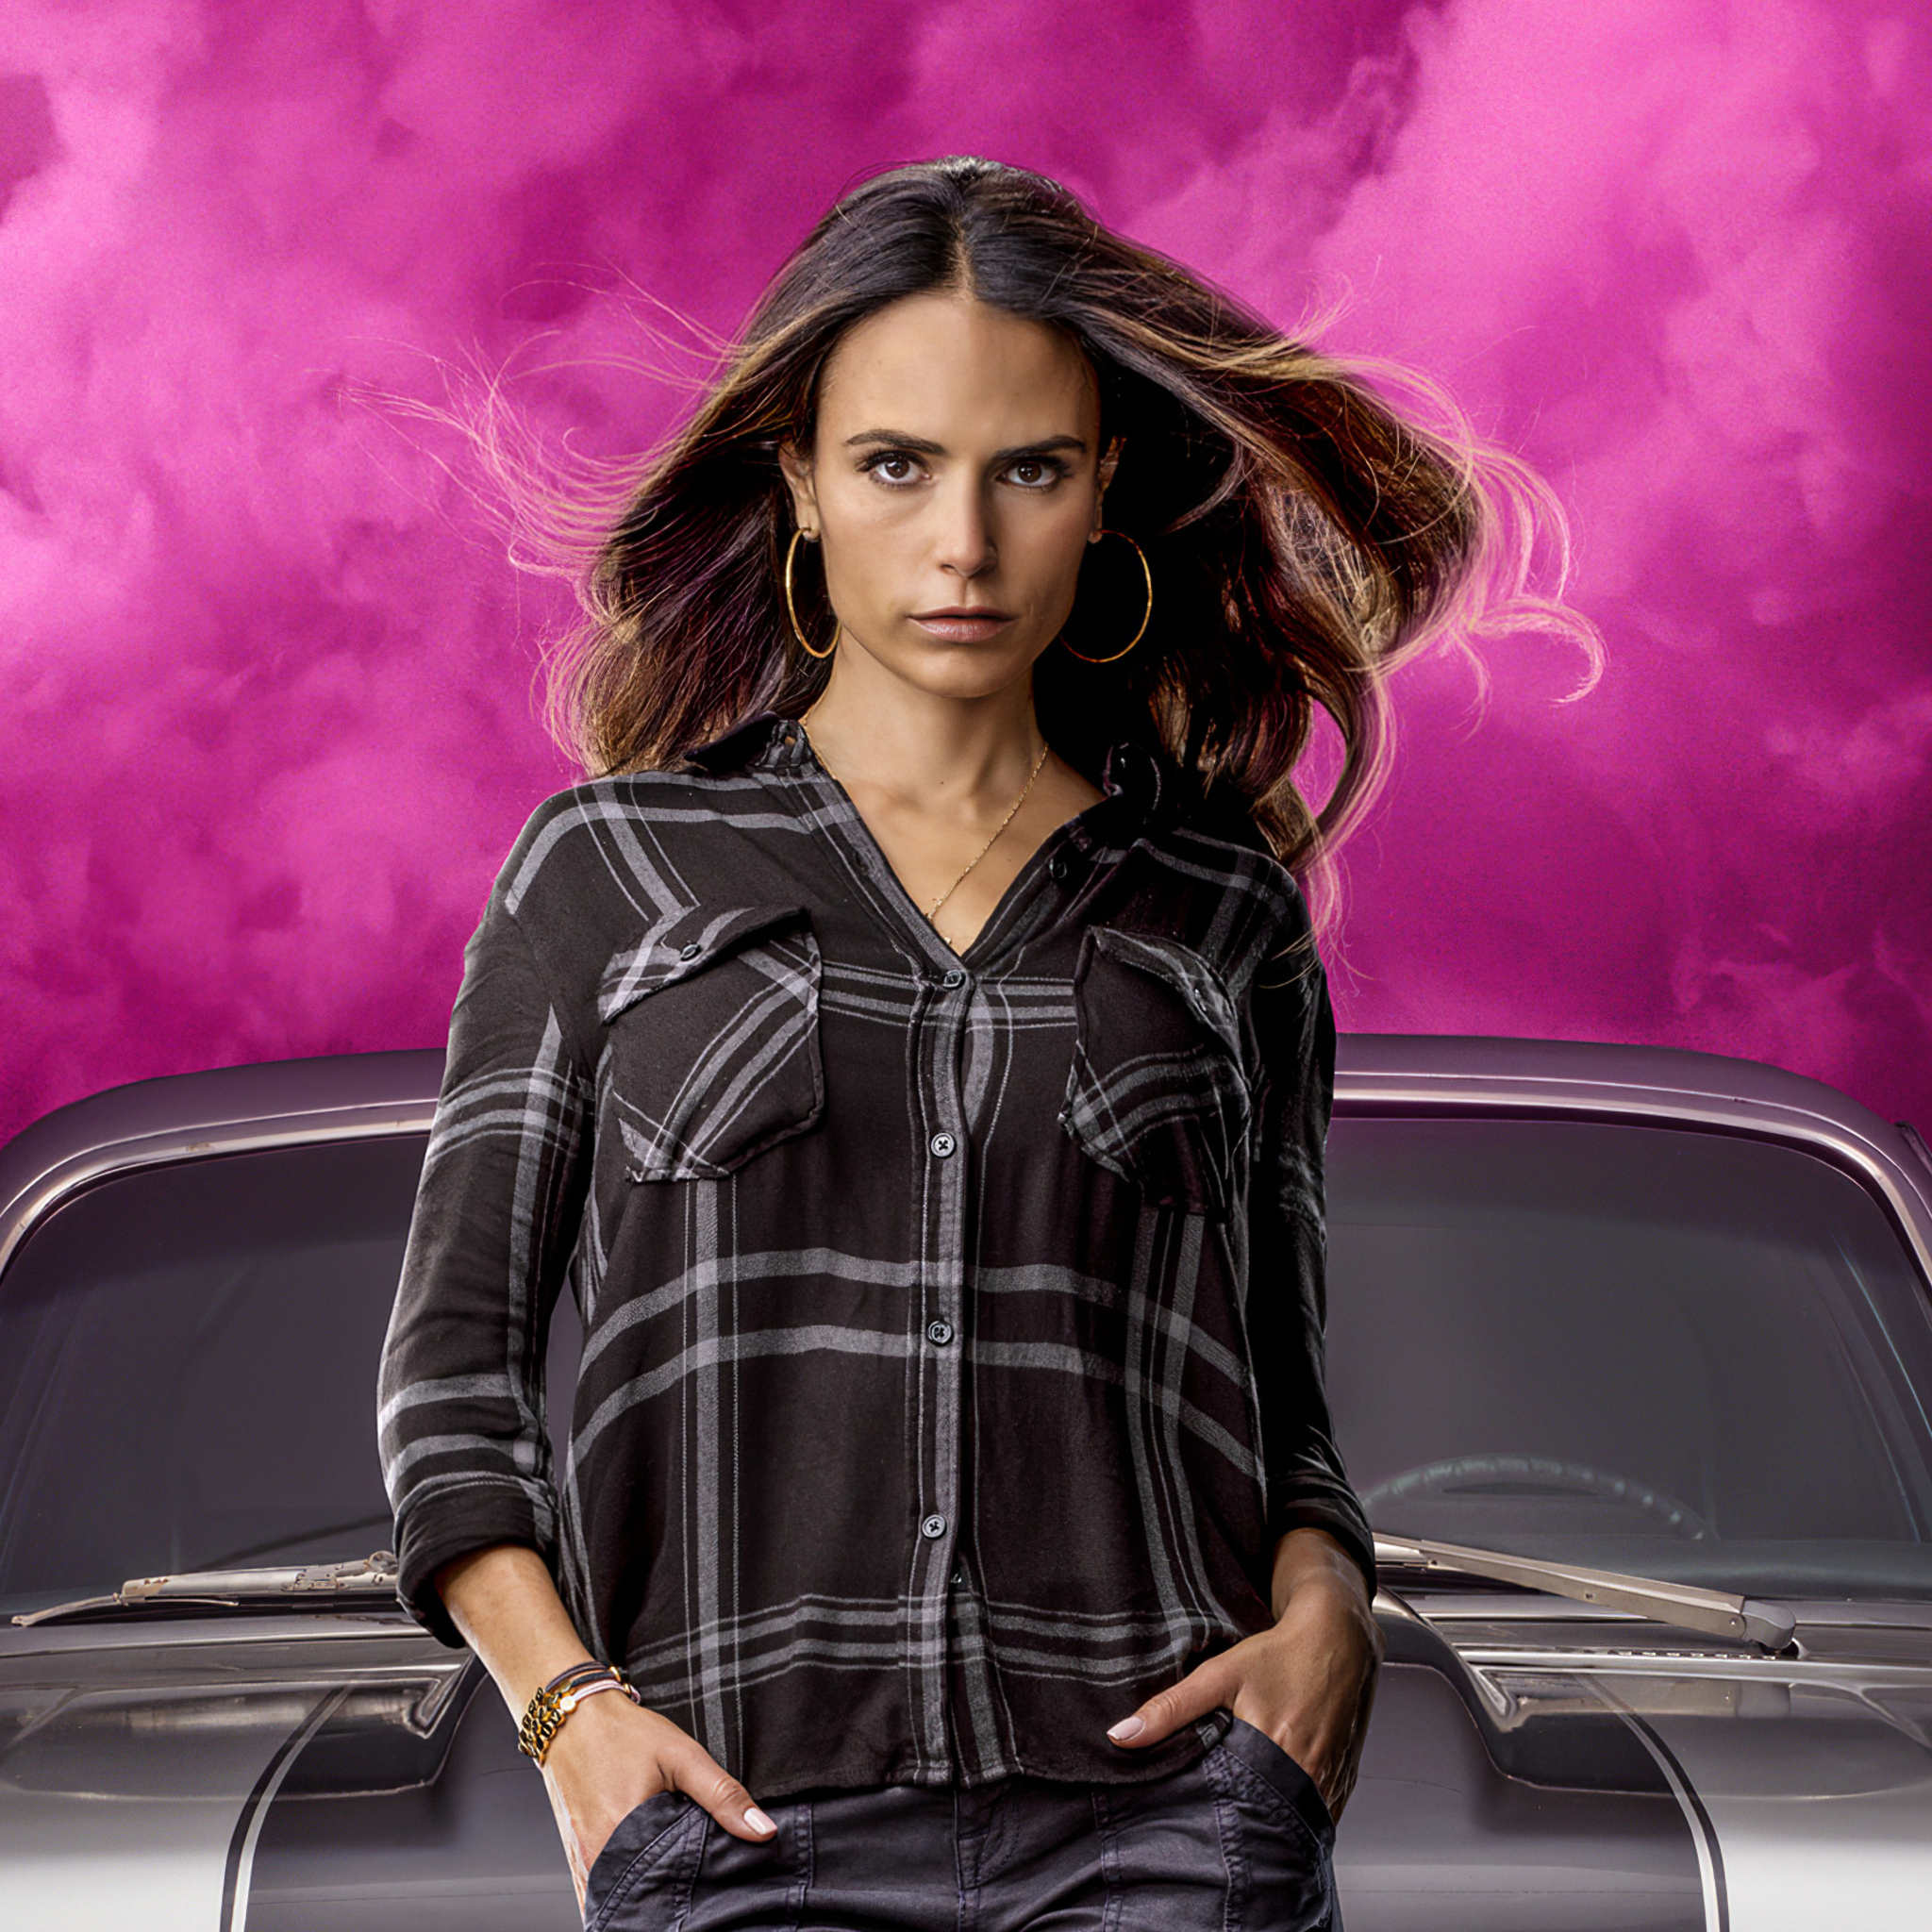 mia-in-fast-and-furious-9-2020-movie-u4.jpg